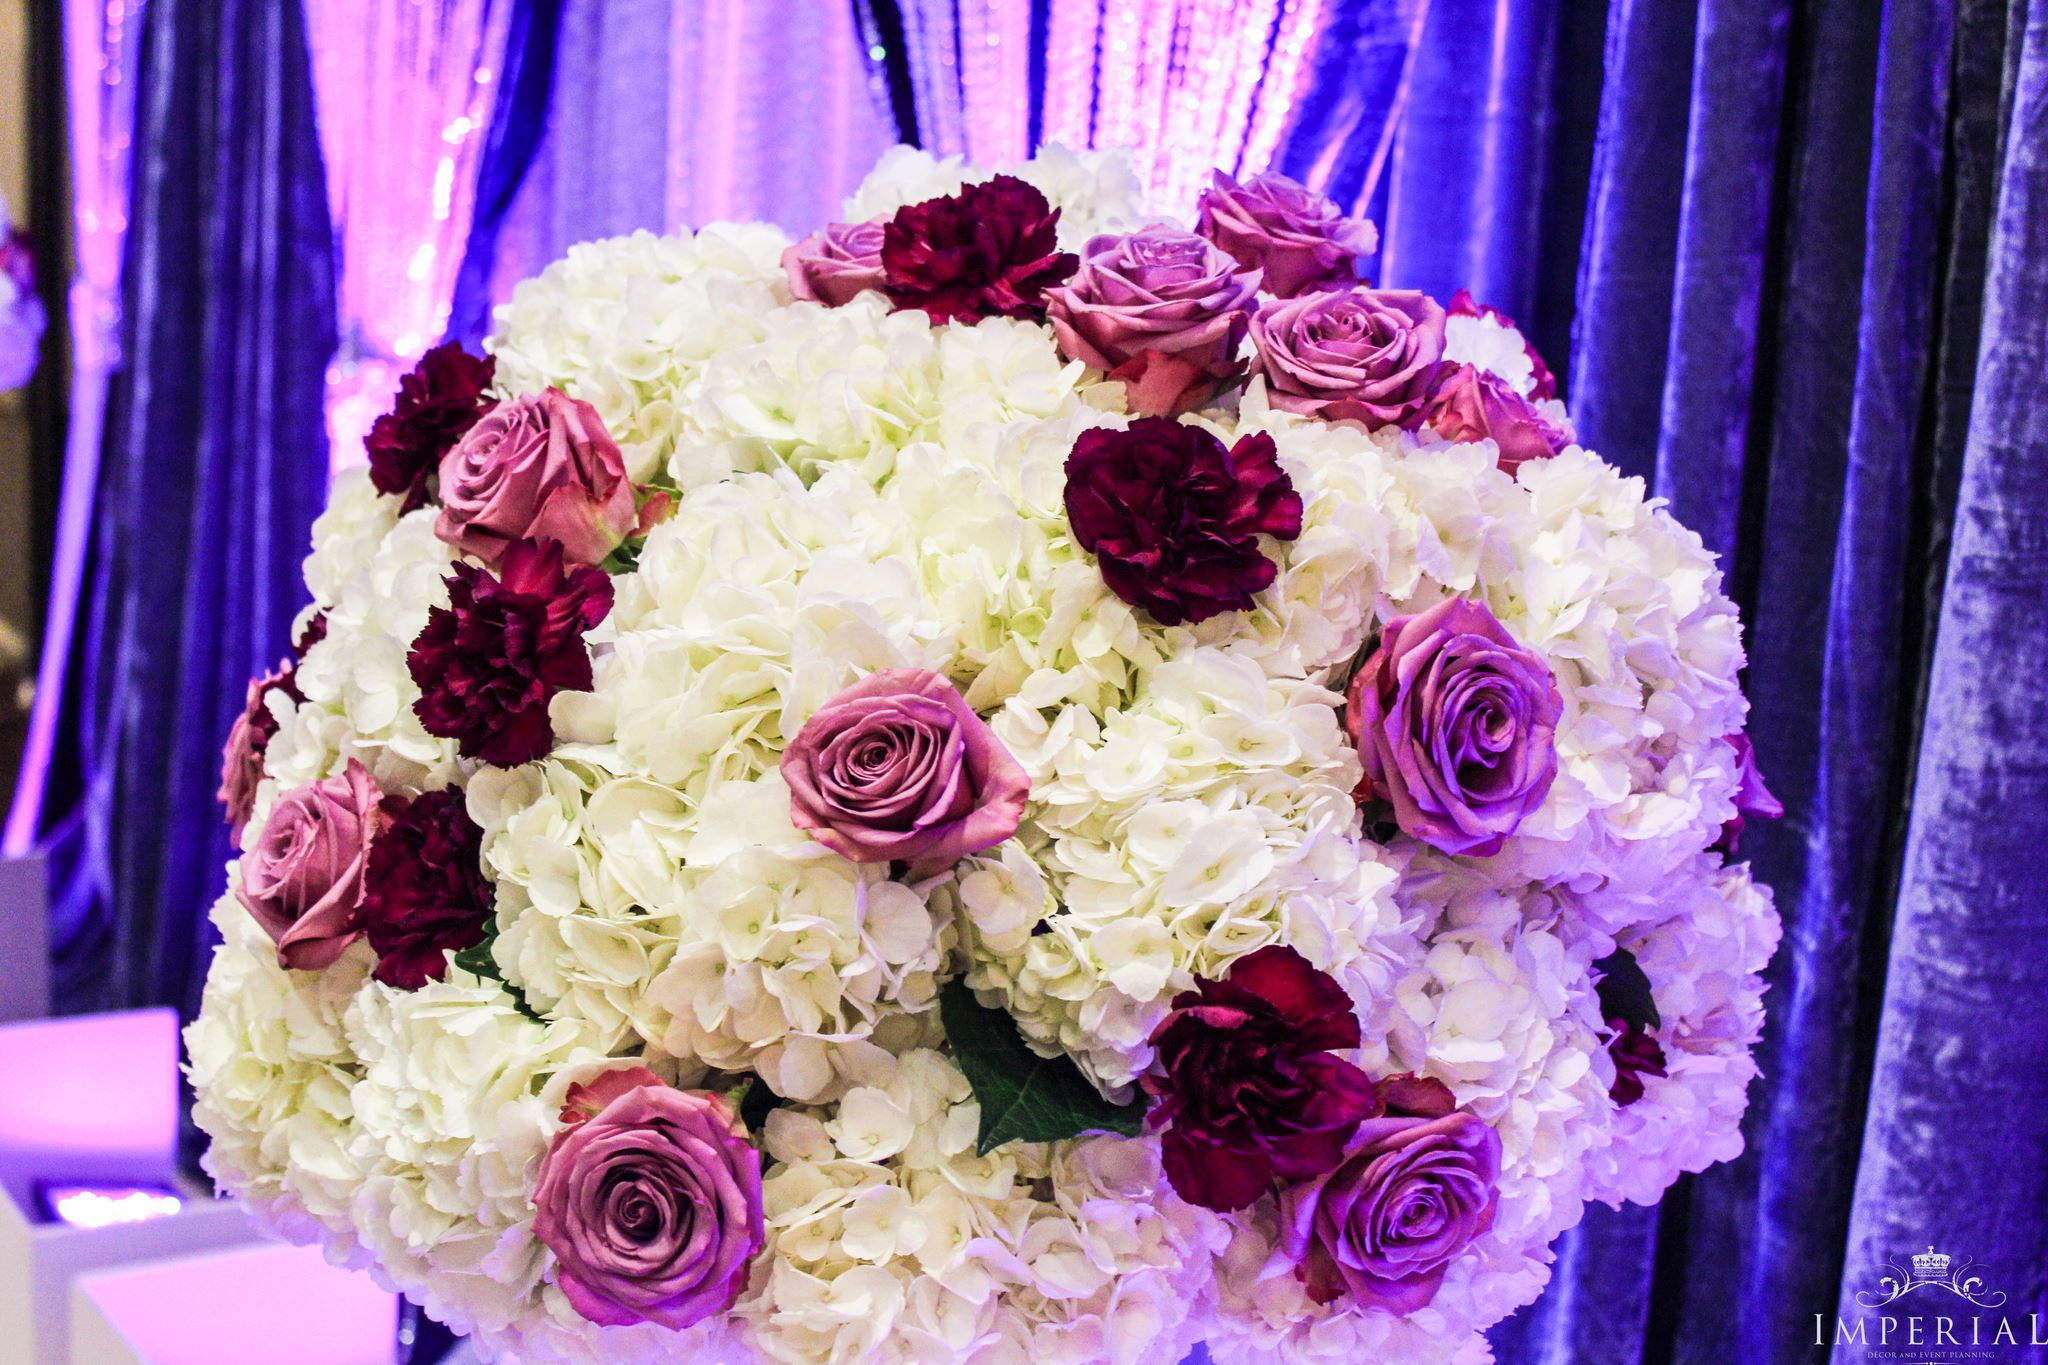 Imperial Decorations - Indian Wedding Flower Decorations Washington DC.jpg